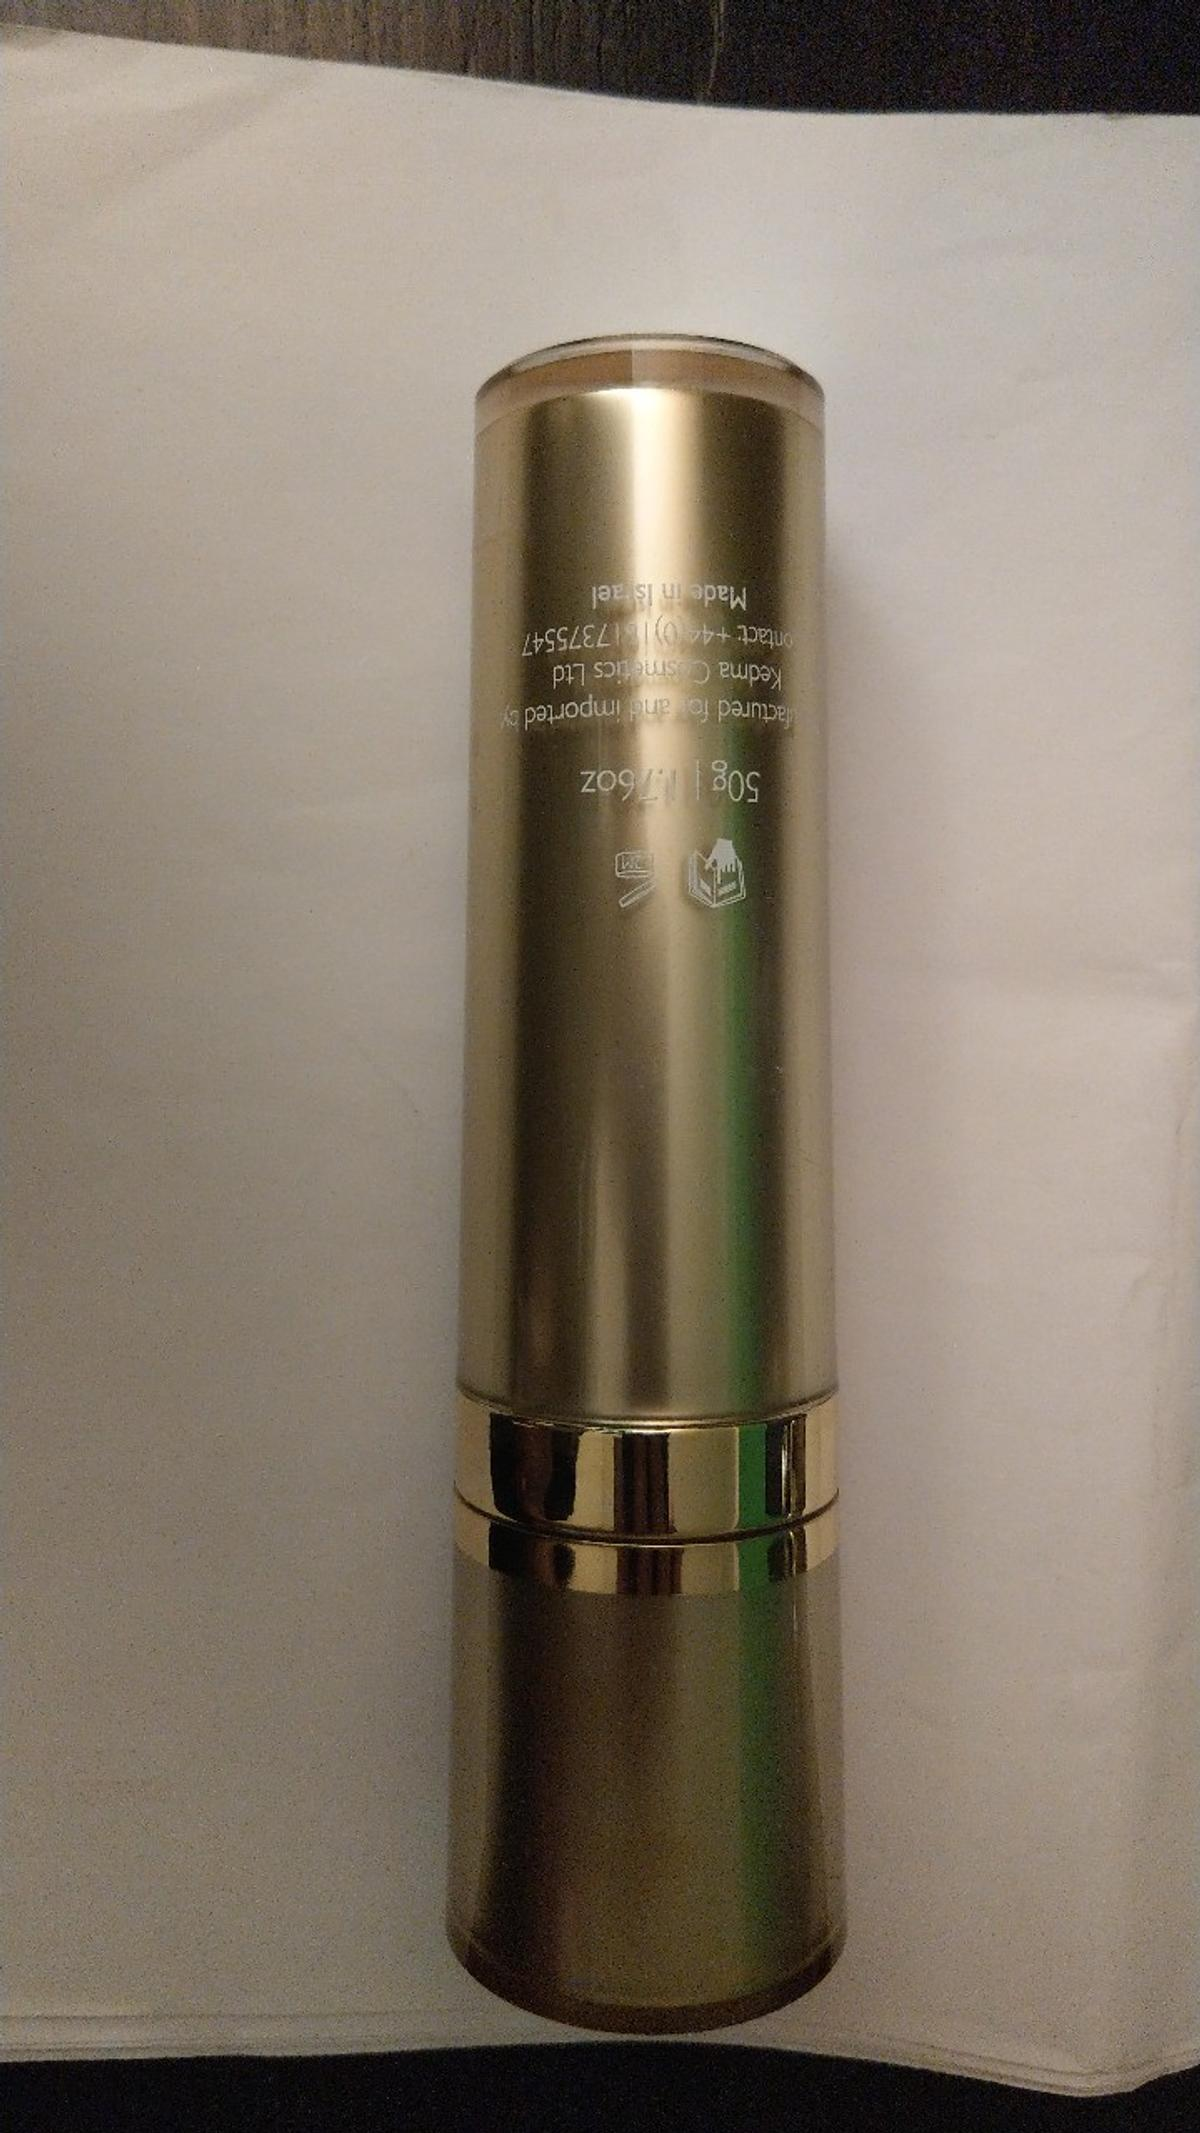 An easily absorbed marine serum formulated to enhance the performance of your skin care age-defying treatment using Kedma products. The Booster is enriched with Marine Collagen, mineral complex from Dead Sea Water, Seaweed and Pearl Powder extract to support skin tone and elasticity and optimally retain its moisture level. Includes active moisturizers to reduce TEWL (Trans Epidermal Water Loss).